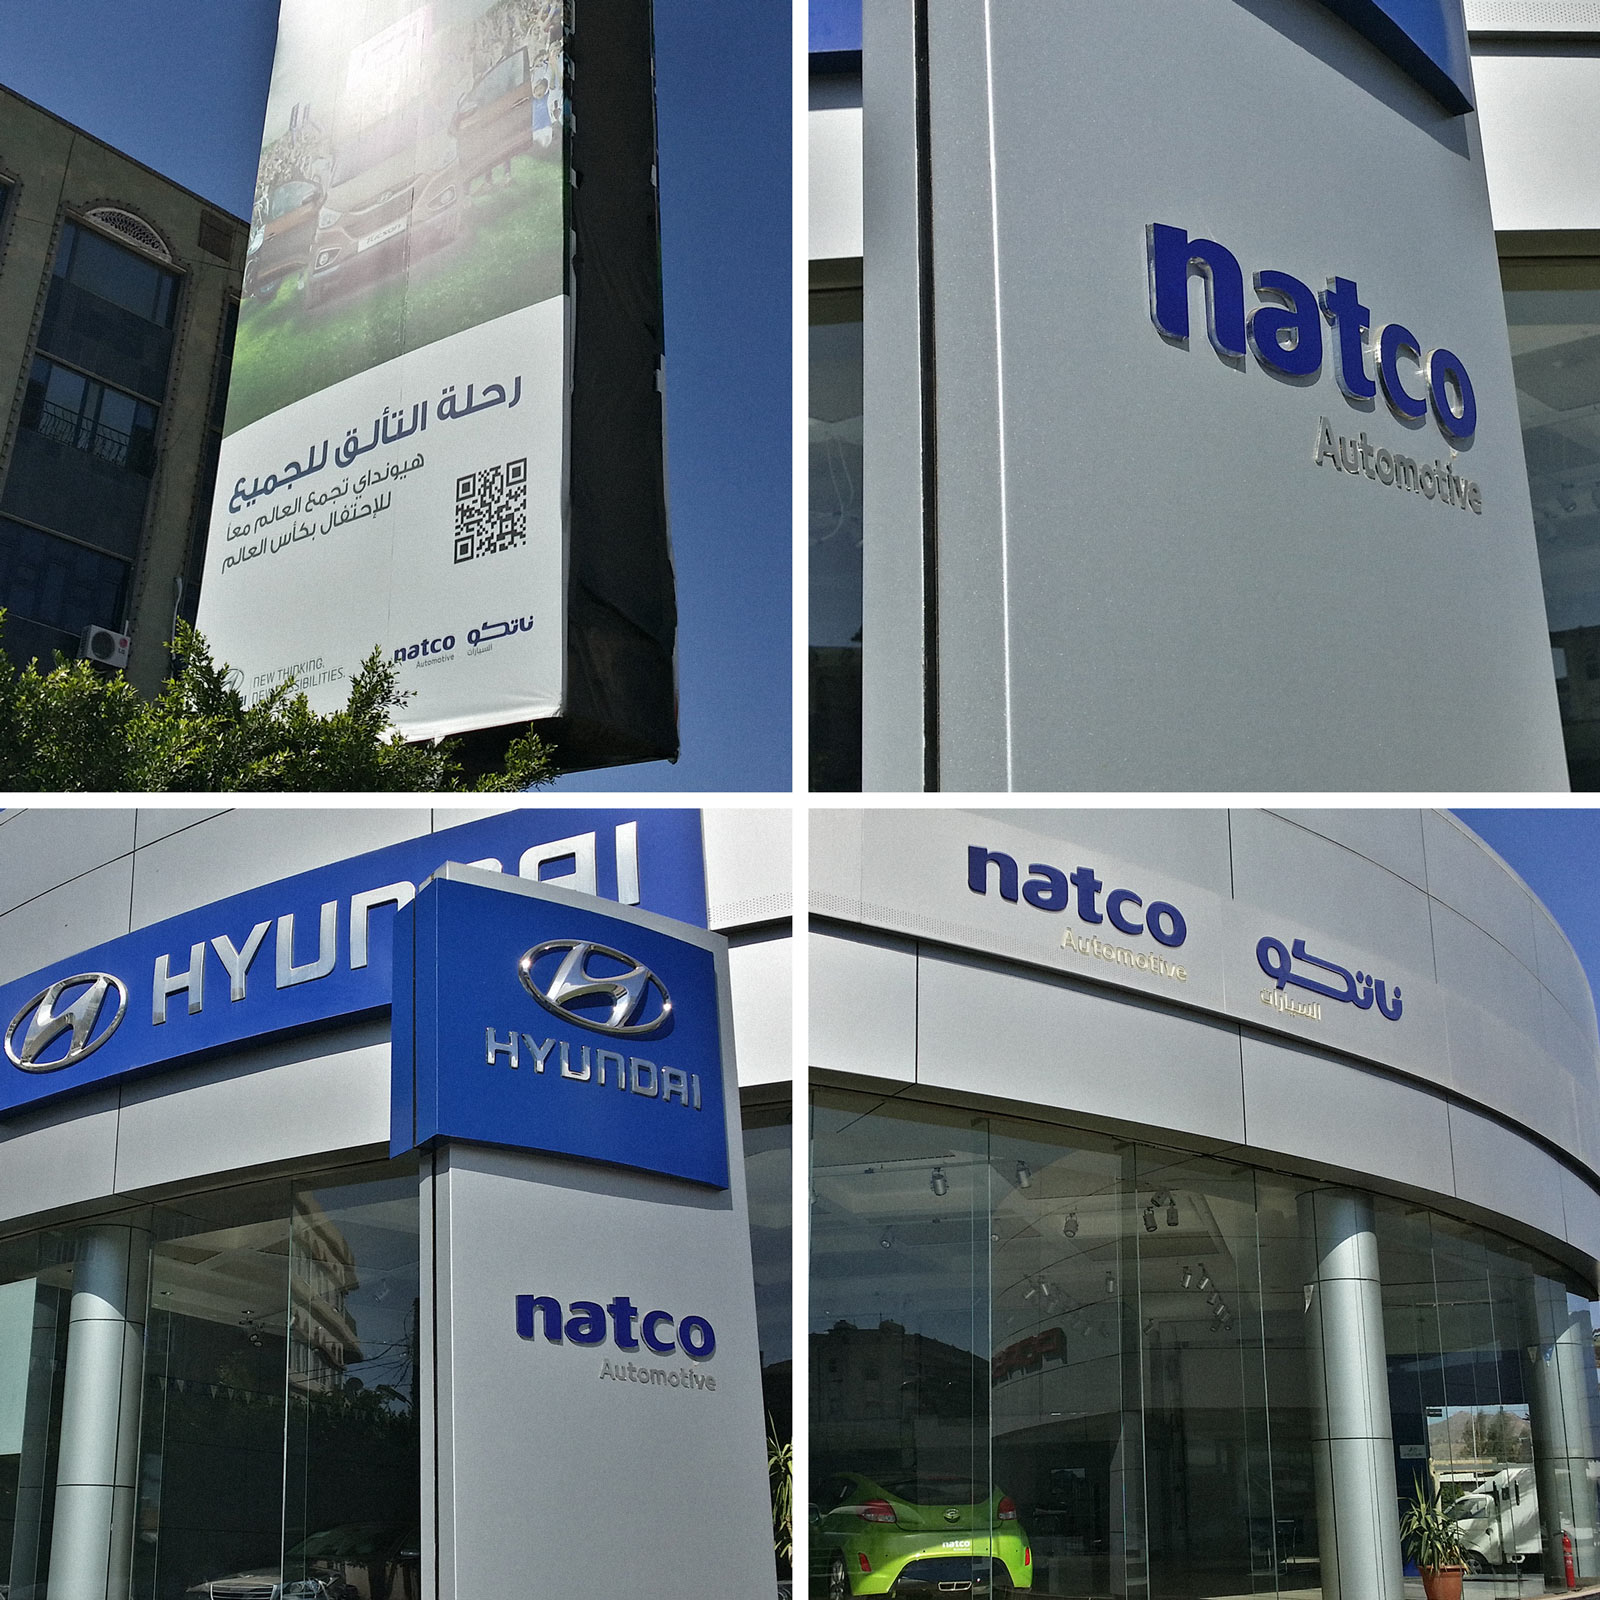 natco main showroom